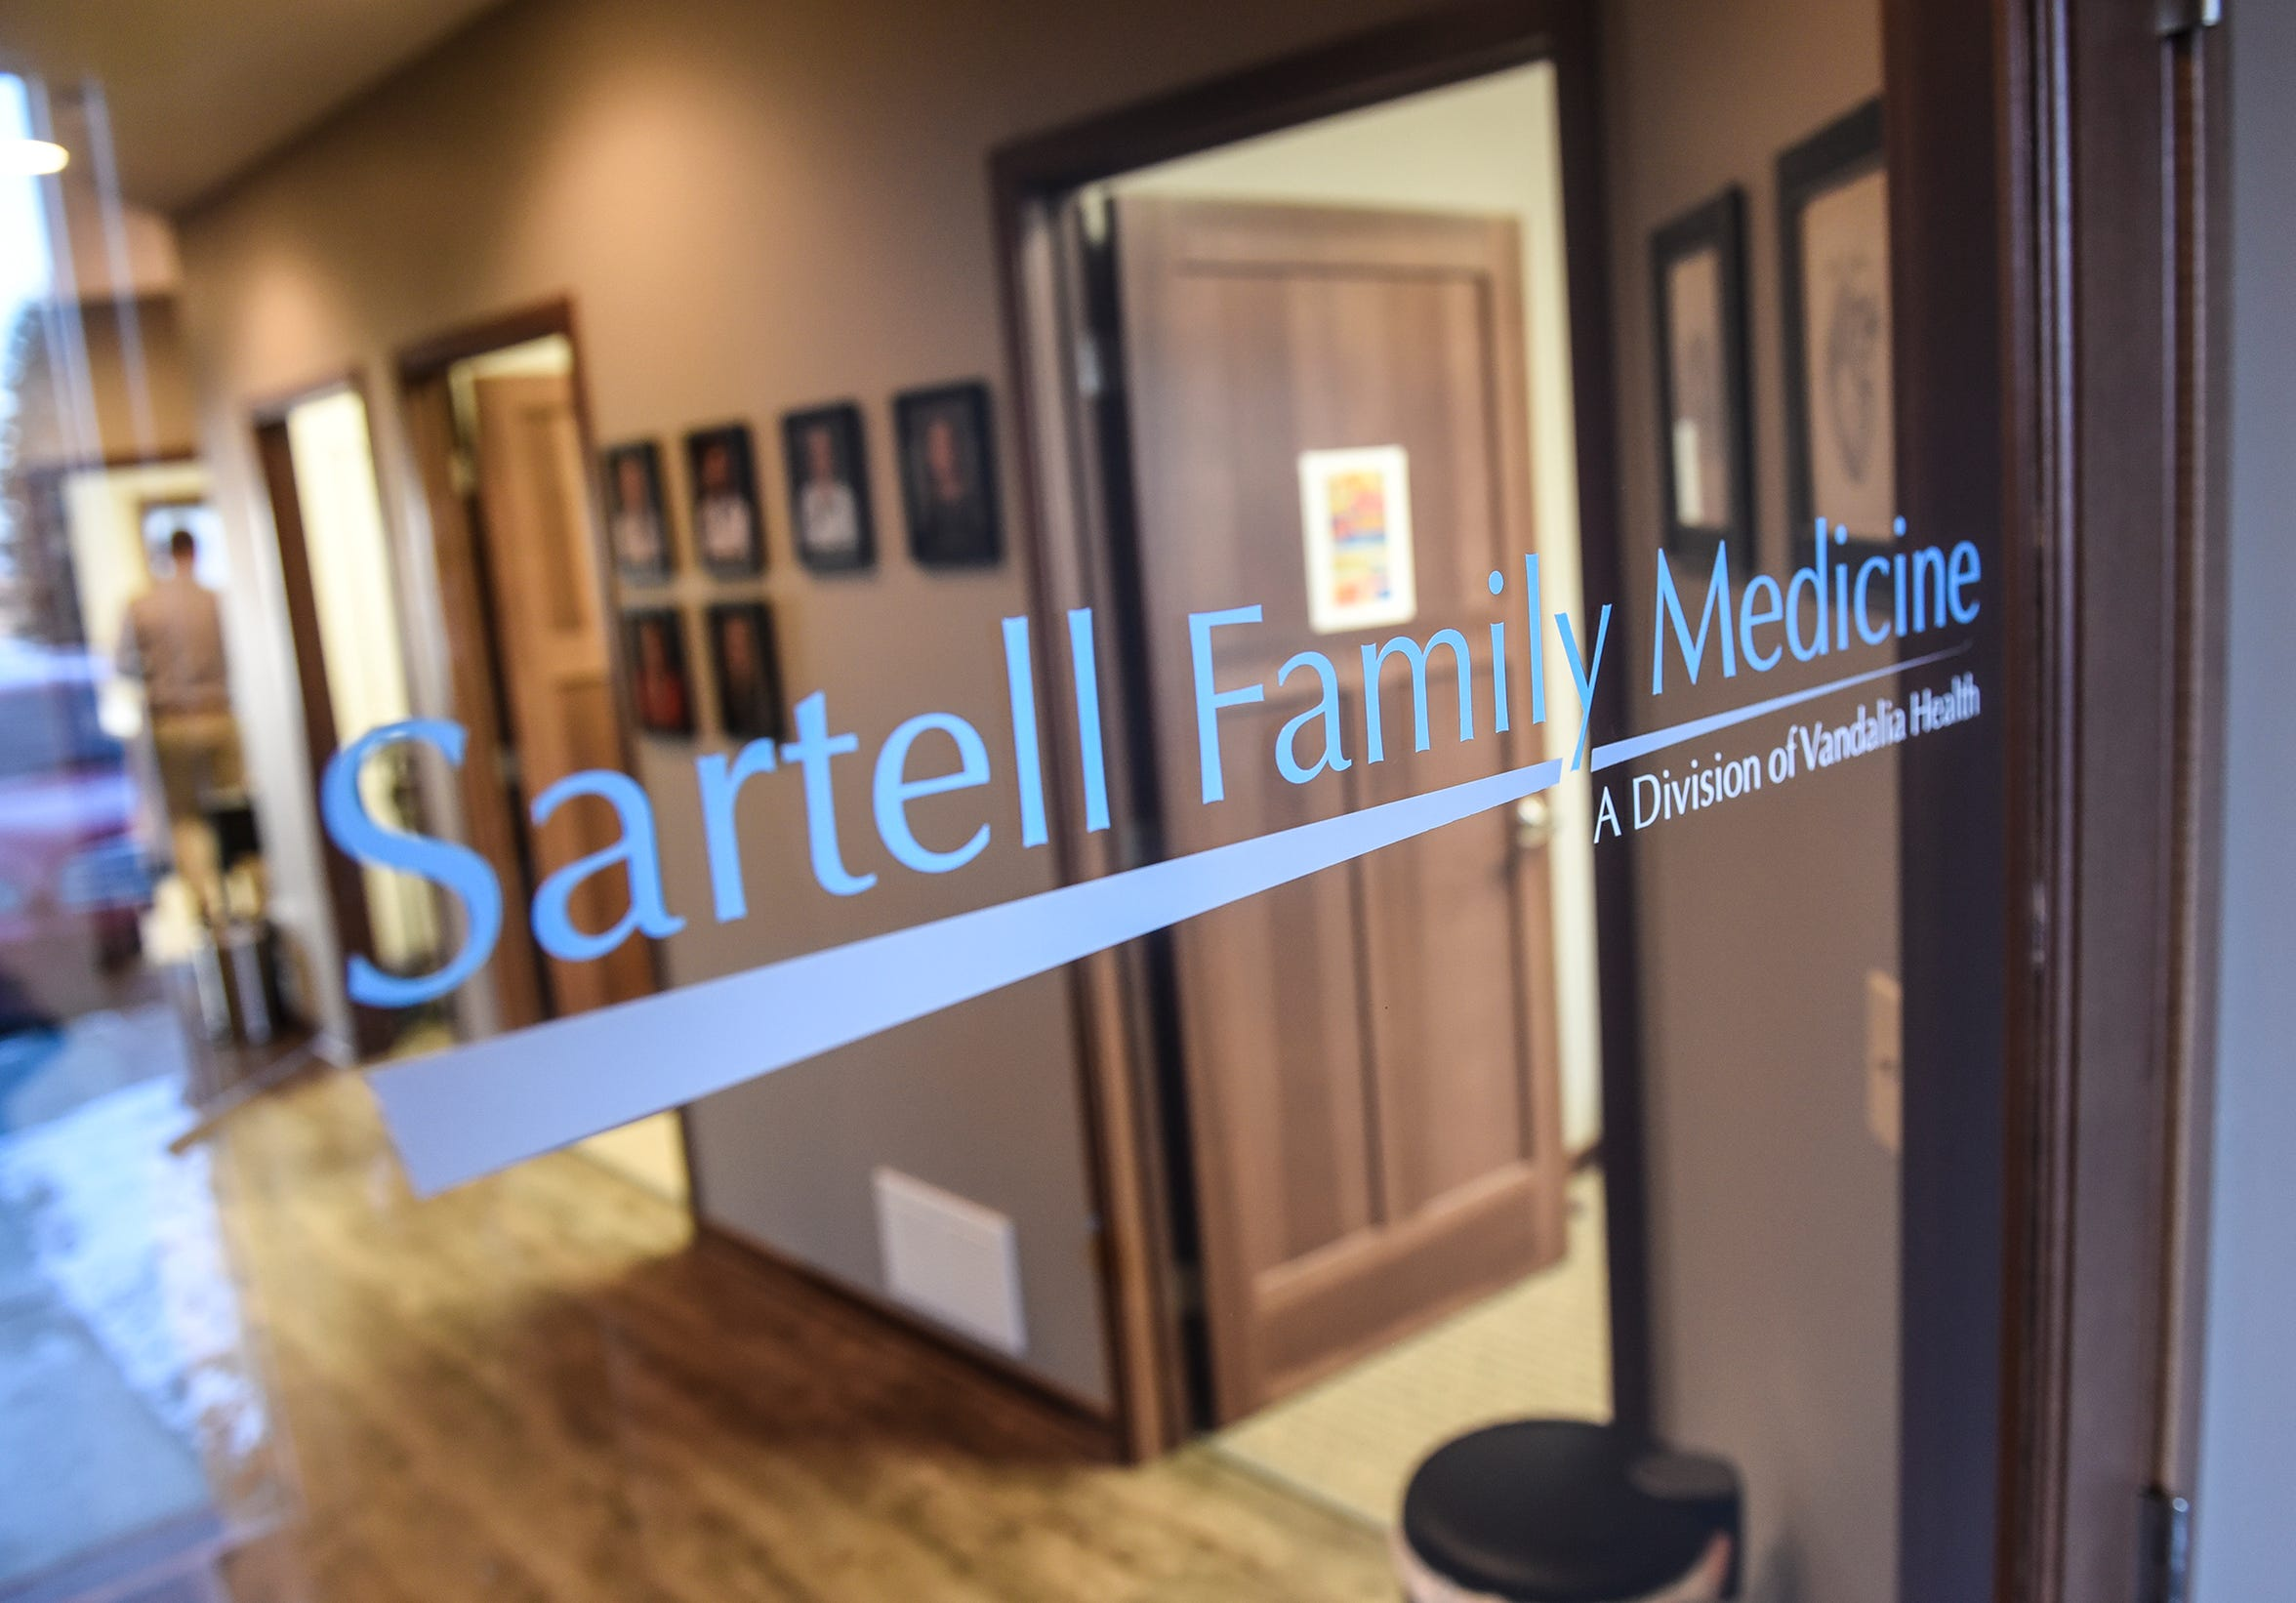 The entrance to Sartell Family Medicine in Sartell.